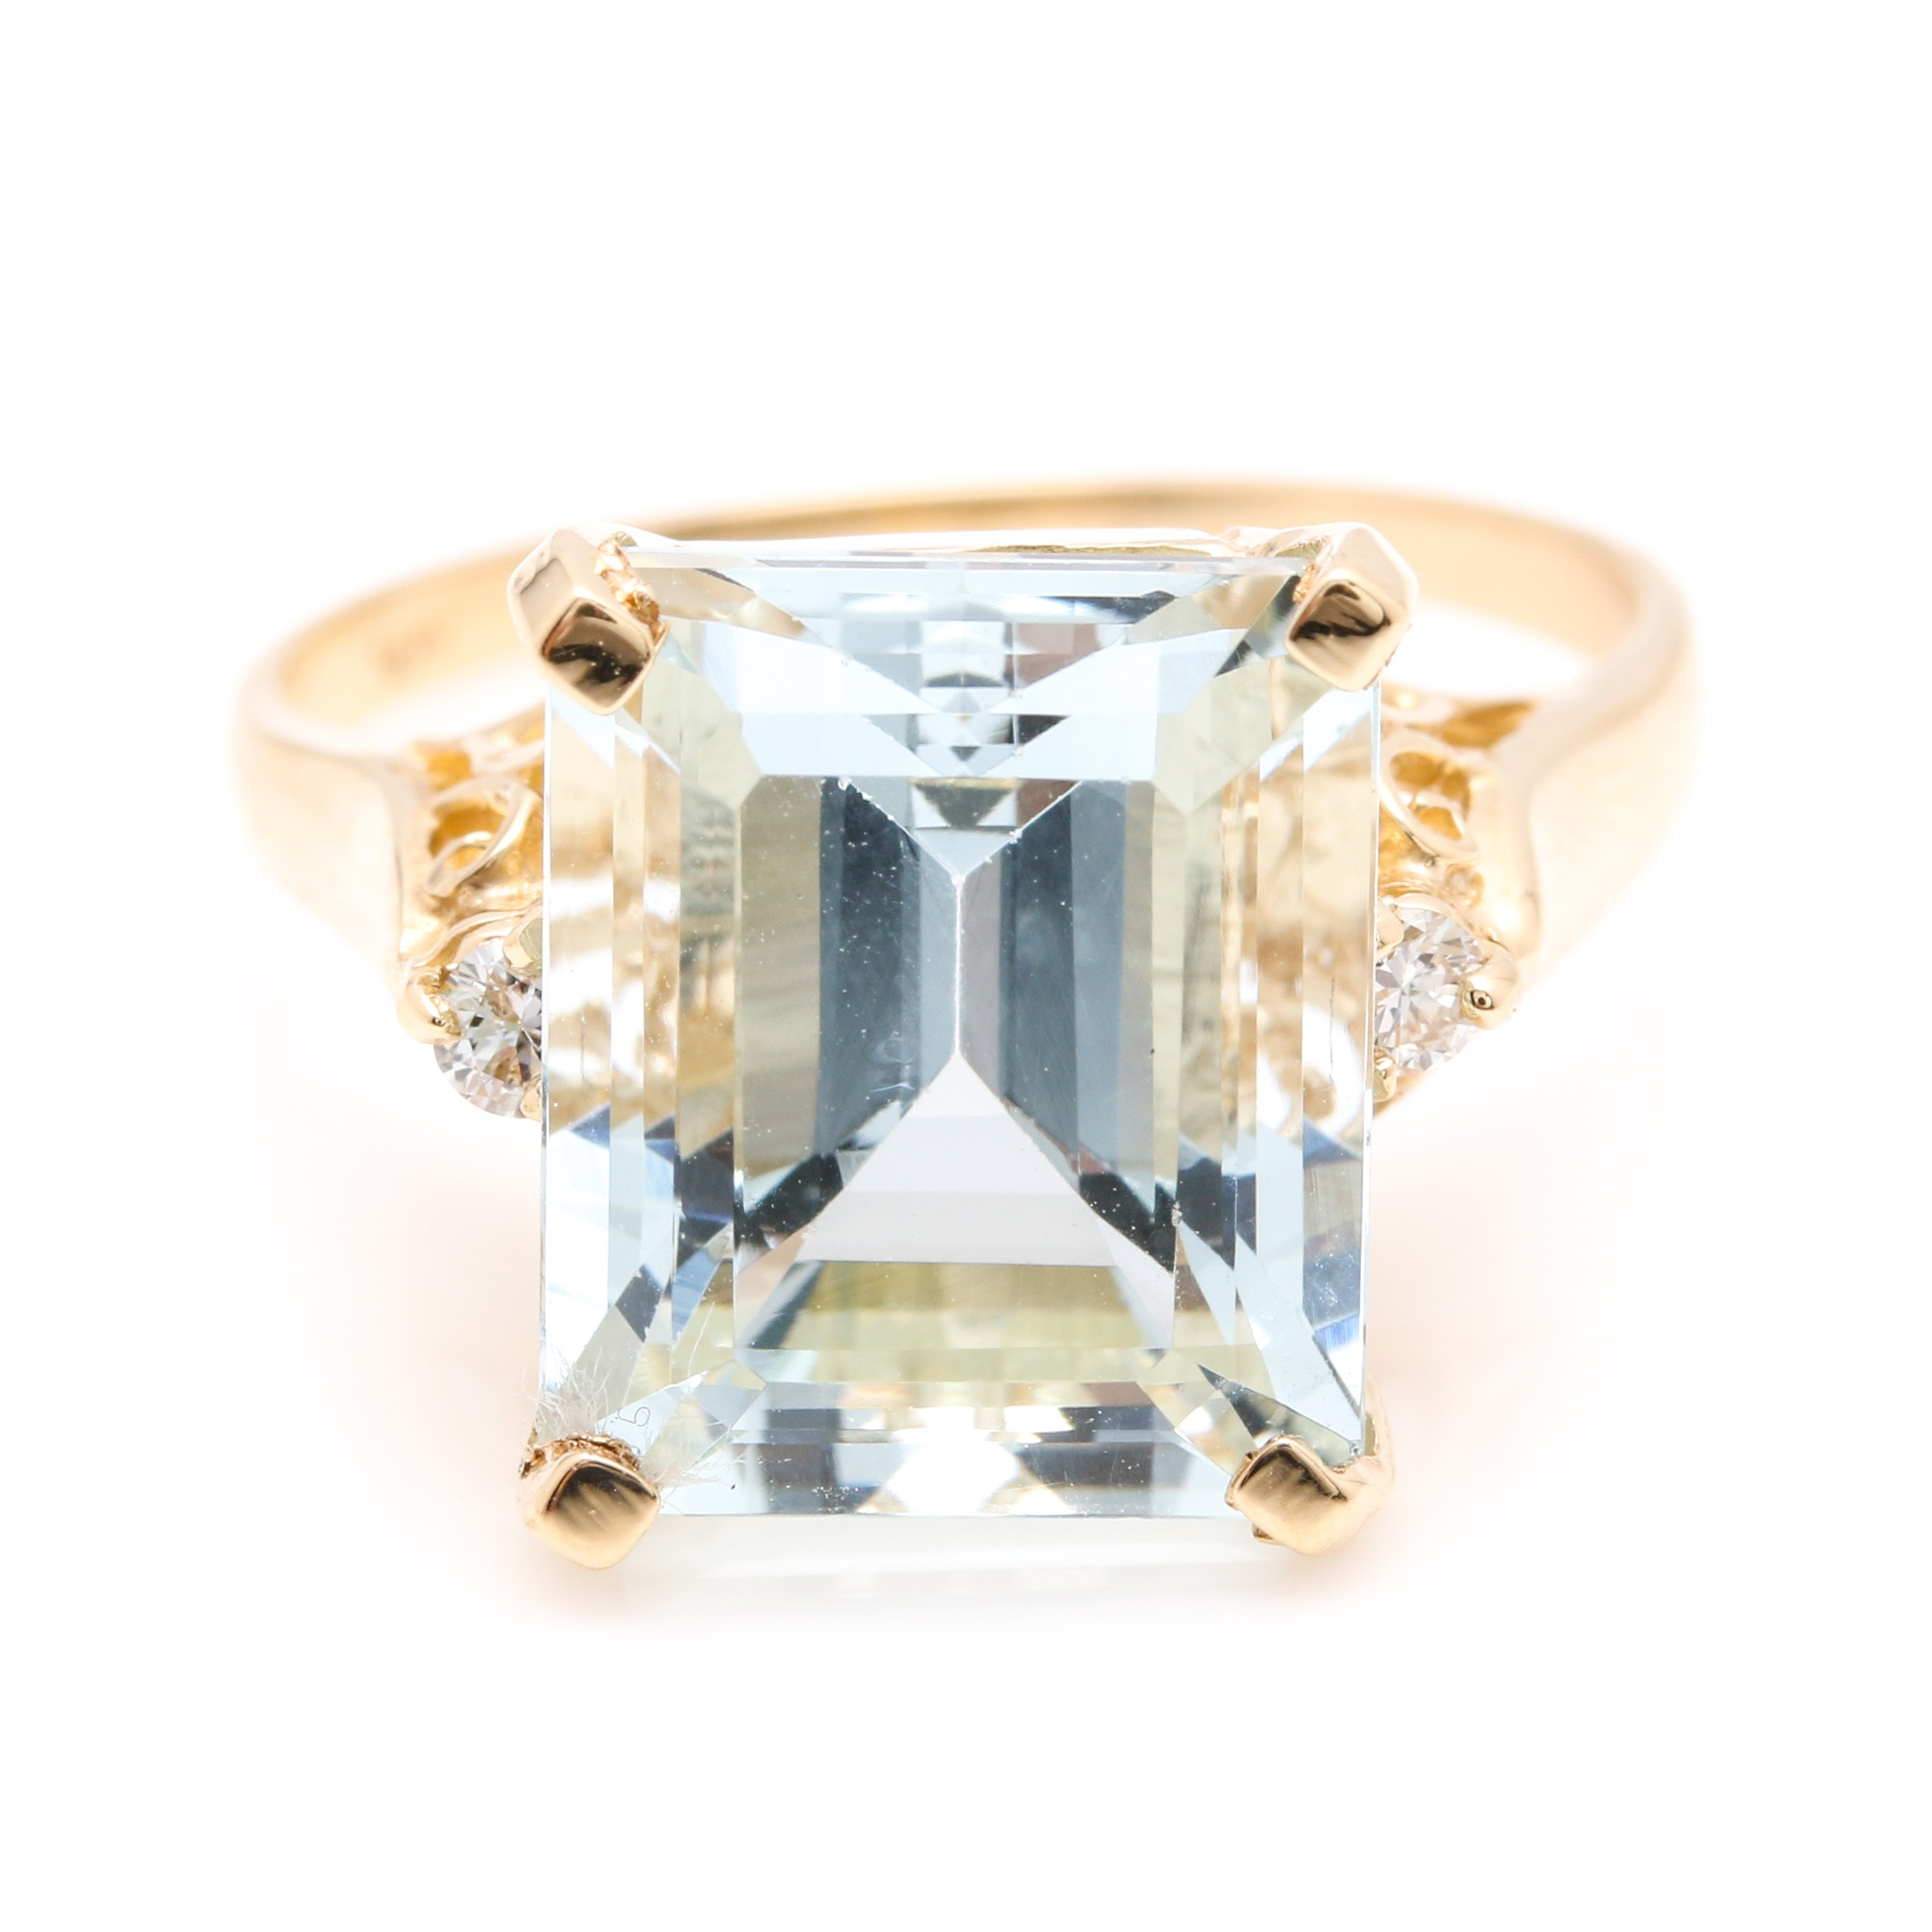 14K Yellow Gold 6.54 CT Aquamarine and Diamond Ring